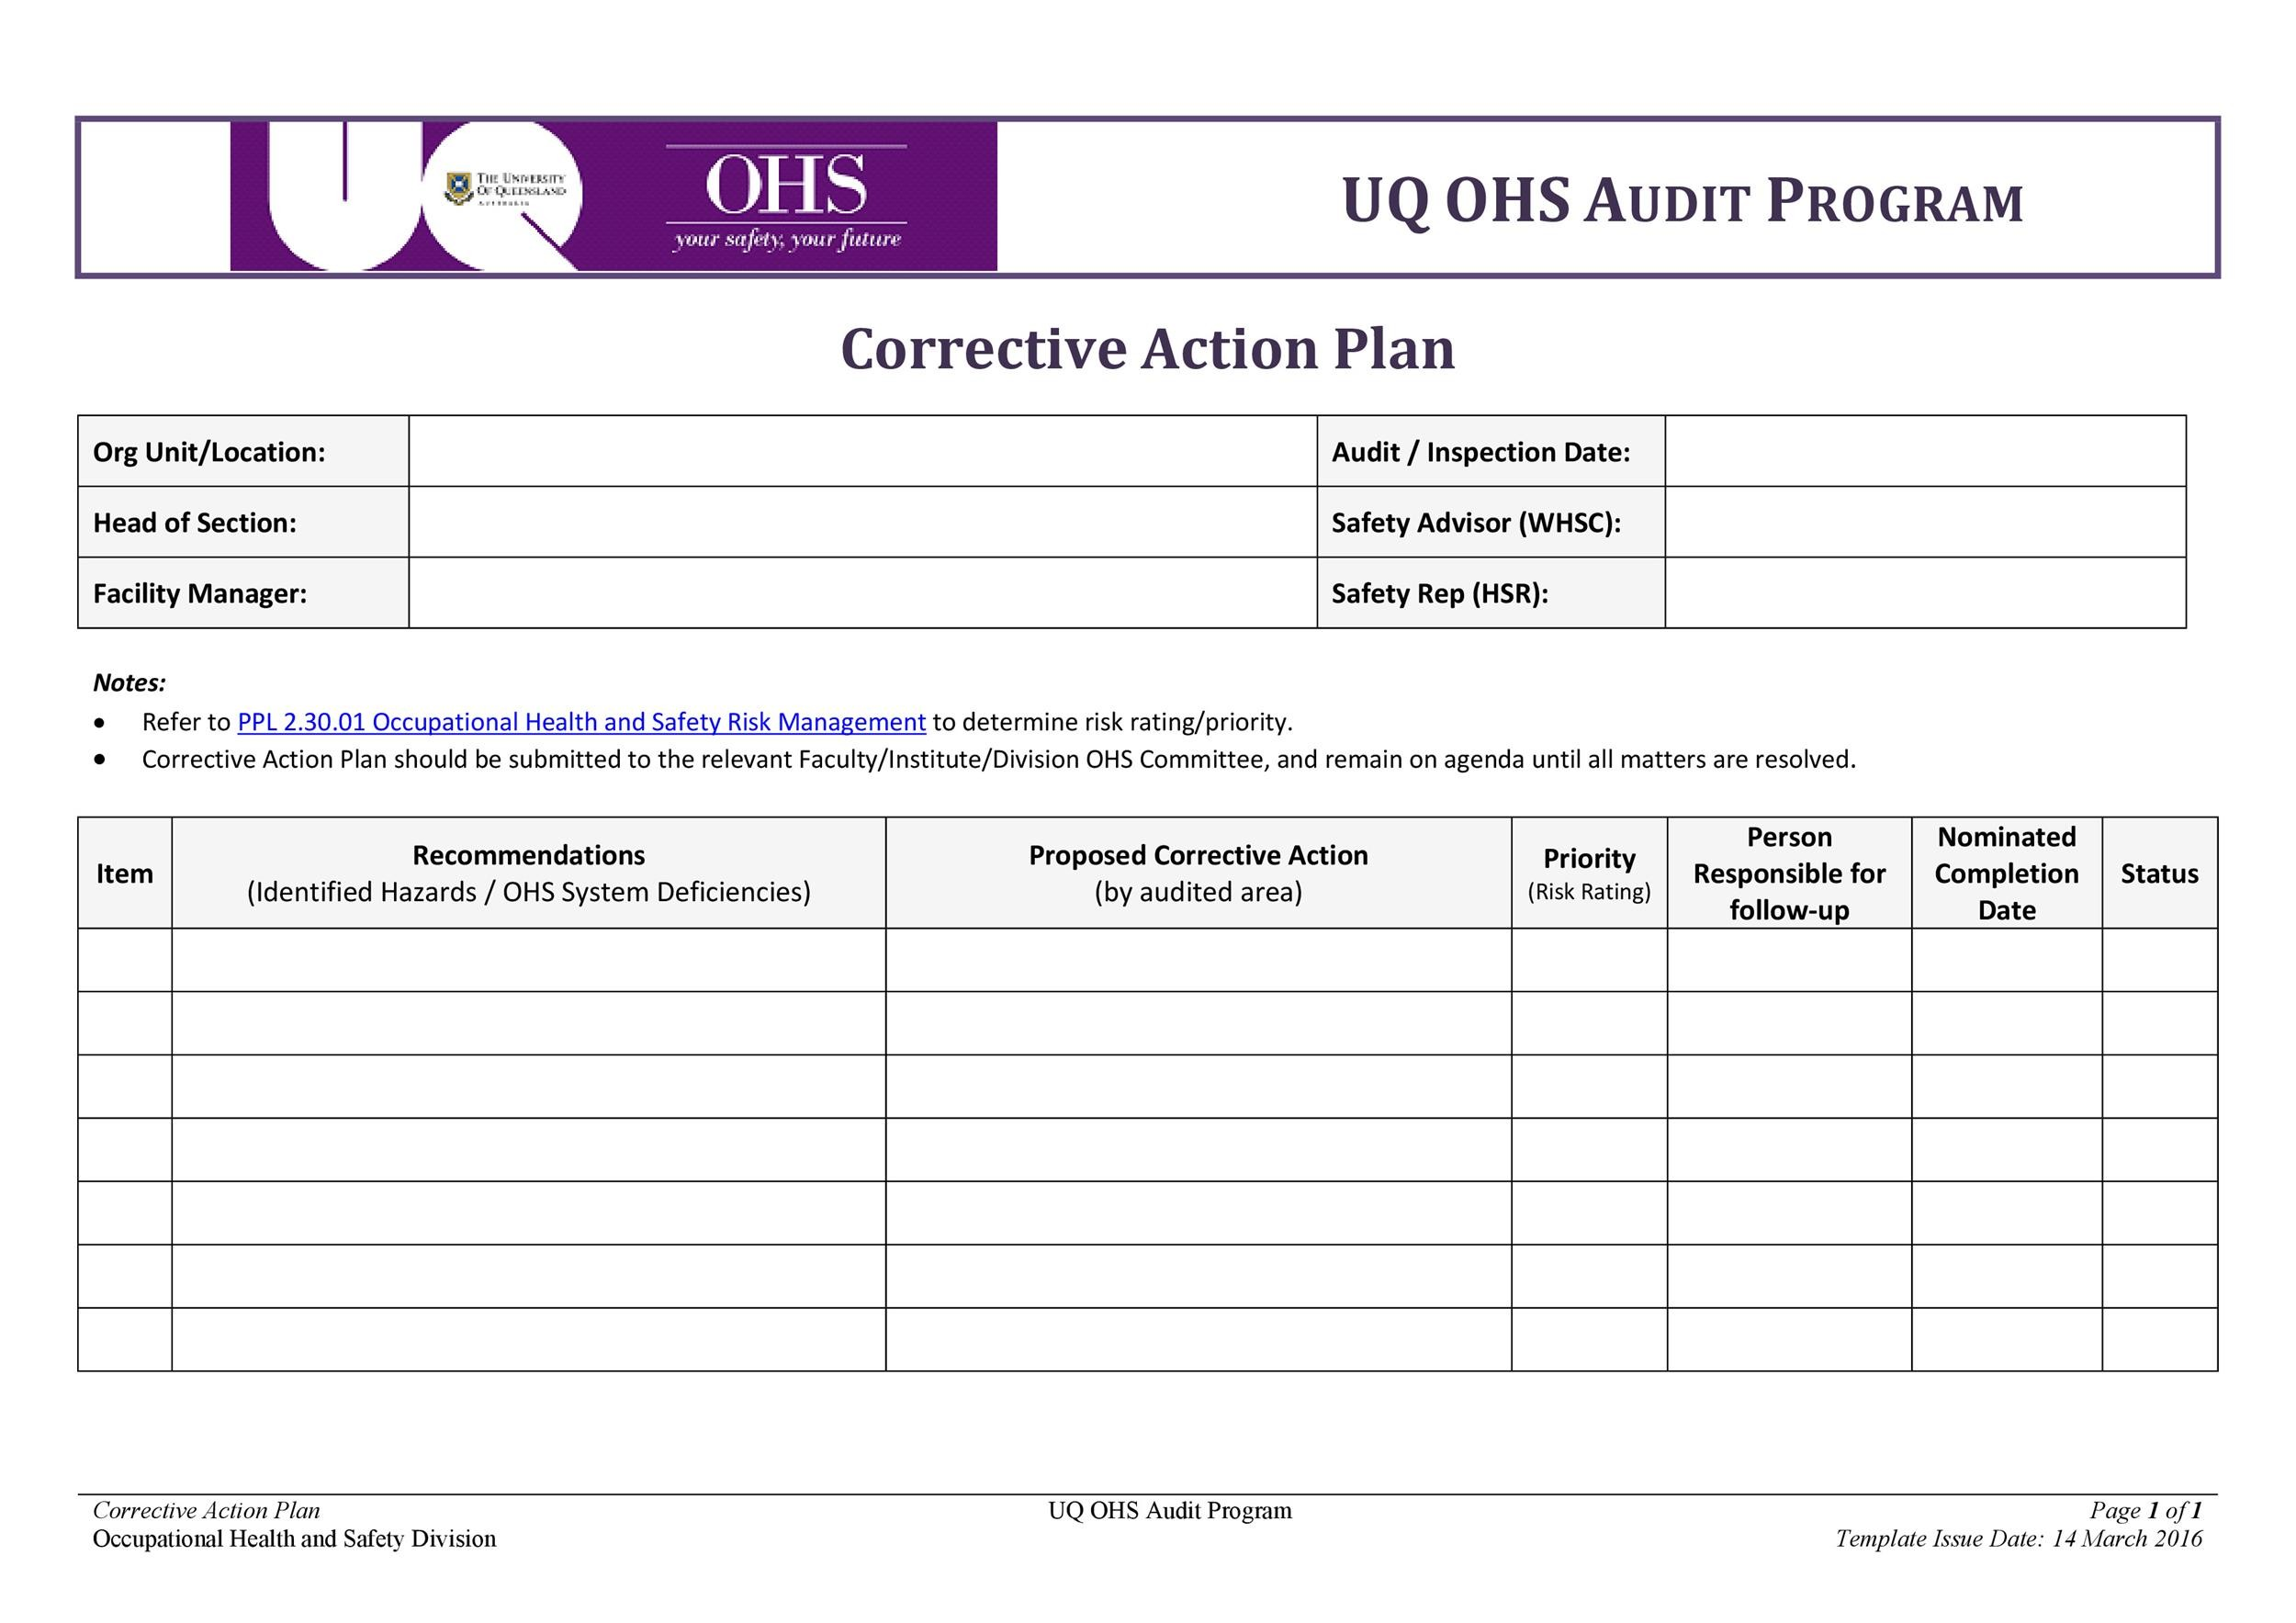 corrective action plan template  45 Free Action Plan Templates (Corrective, Emergency, Business)